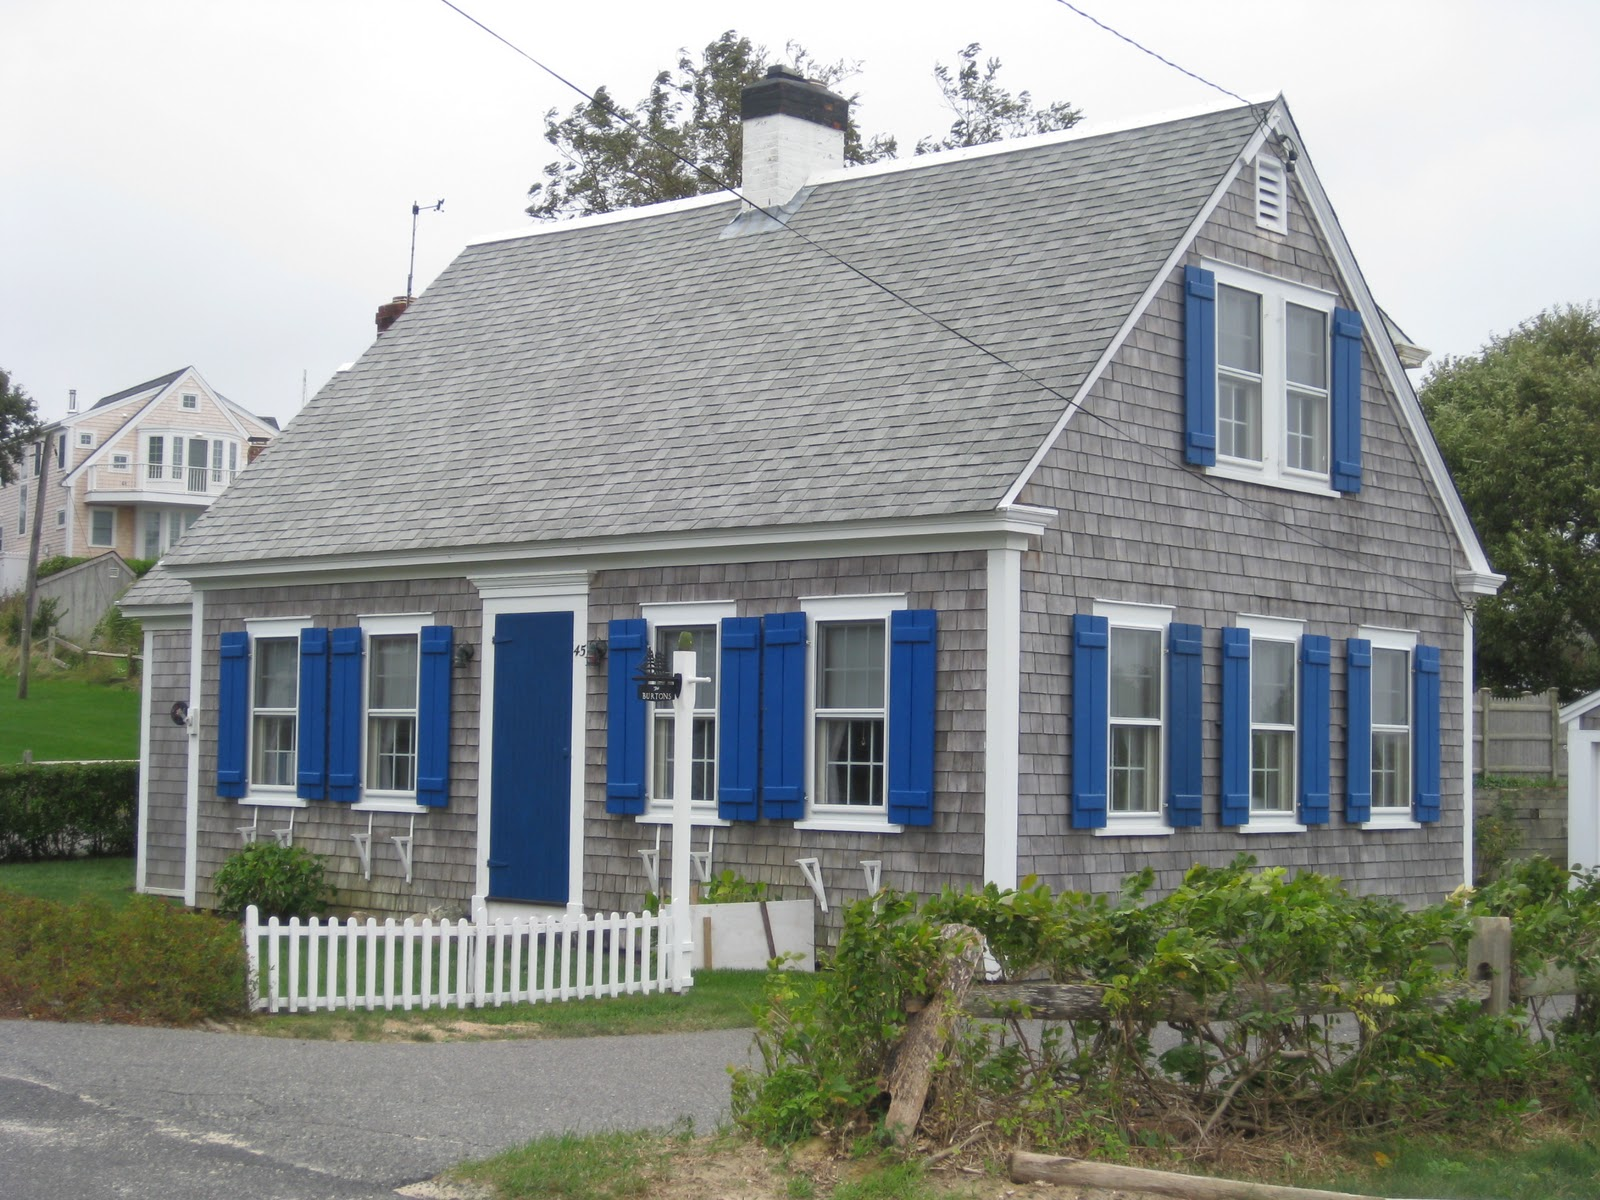 Scenes from cape cod pt iv landmarks - Cape cod style homes ...